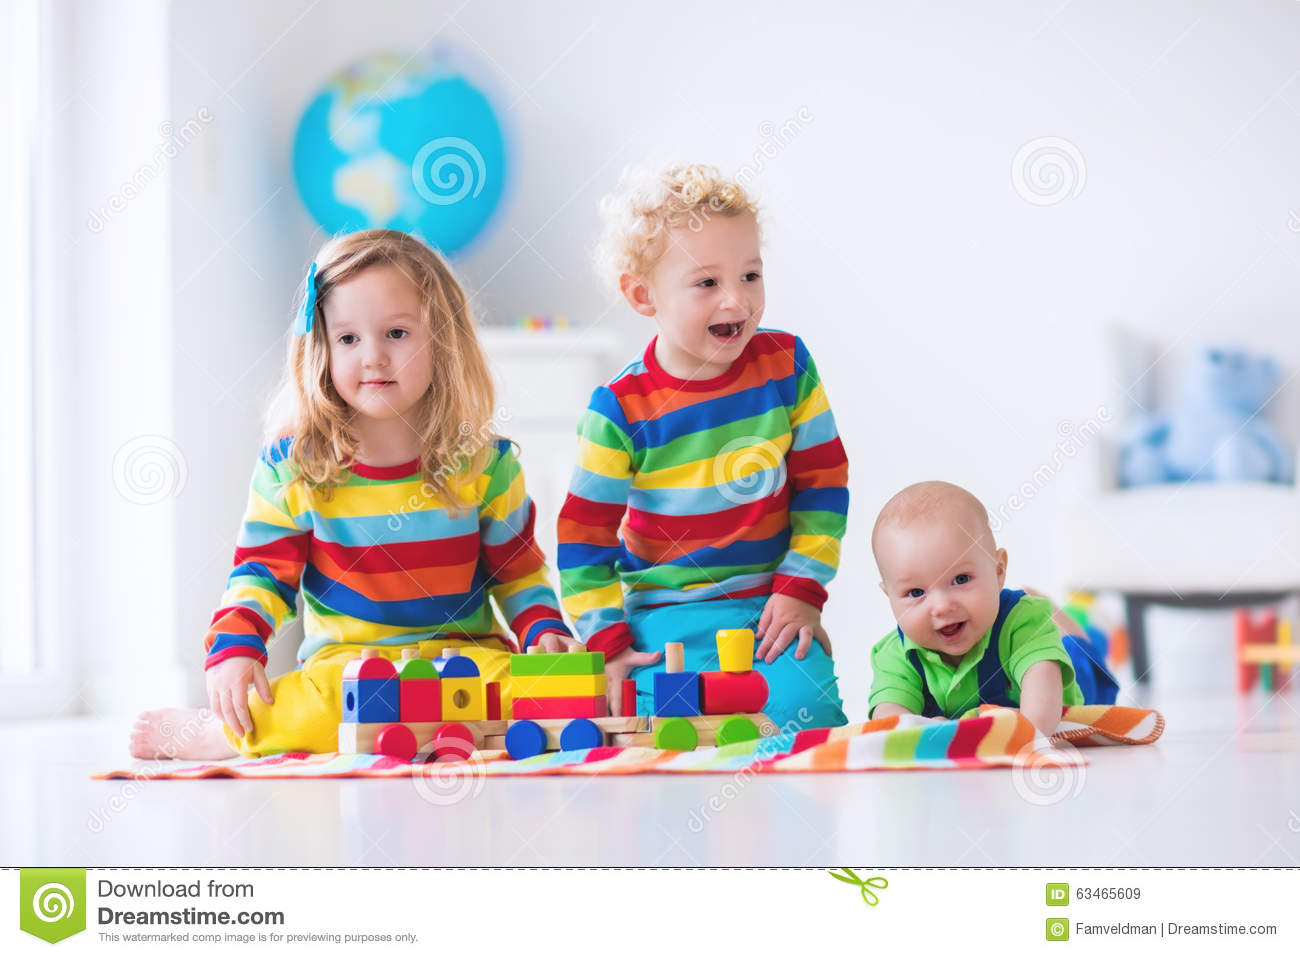 play time toy co Play time toy co case analysis, play time toy co case study solution, play time toy co xls file, play time toy co excel file, subjects covered financing inventory management production planning production scheduling risk management by thomas r piper source: hbs premier case colle.